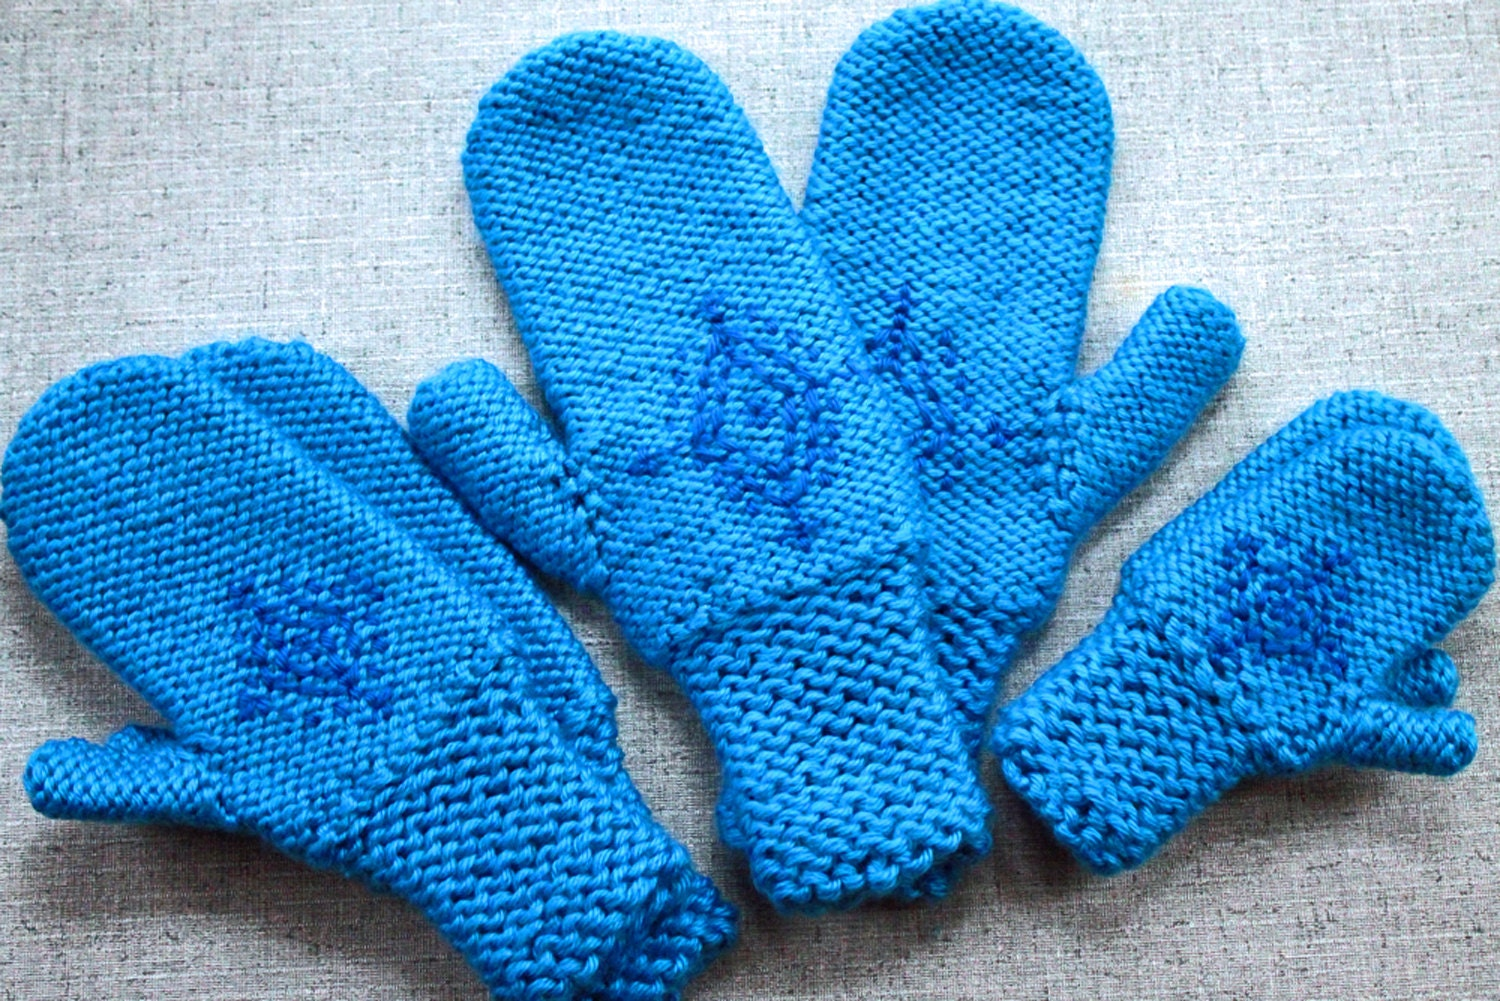 Knitting Pattern: Annas Frozen Mittens Snowflake Gloves